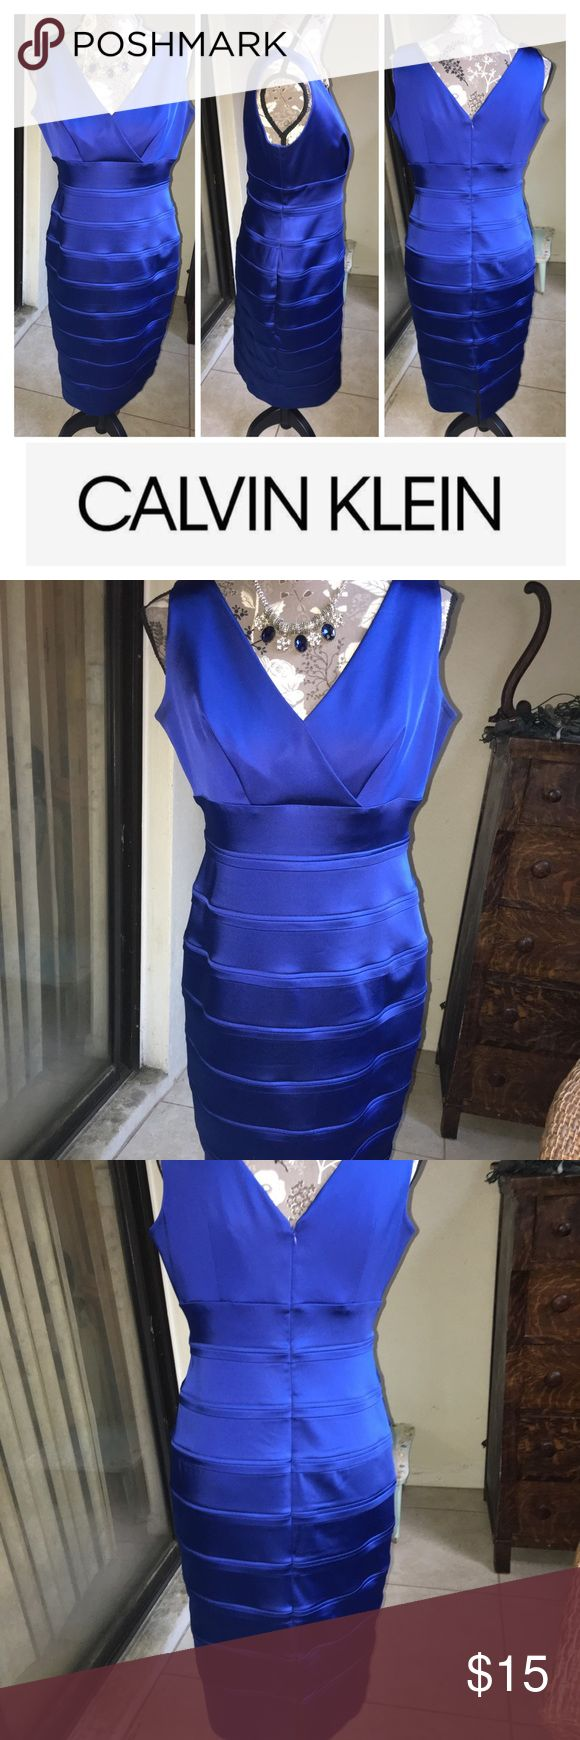 Vintage Calvin Klein Blue Satin Dress  Size 8. Stunning vintage 90's Calvin Klein royal blue sleeveless satin dress, size 8. There is no actual size tag, but previous owner states size 8. Cleavage has been professionally stitched together to avoid exposing too much. Has quite a few pulls in the satin, and priced accordingly. It's nothing detracting, but they are present, so I must disclose. Dry clean only. Necklace not included. From a smoke free, pet friendly home. Thank you! Calvin Klein…